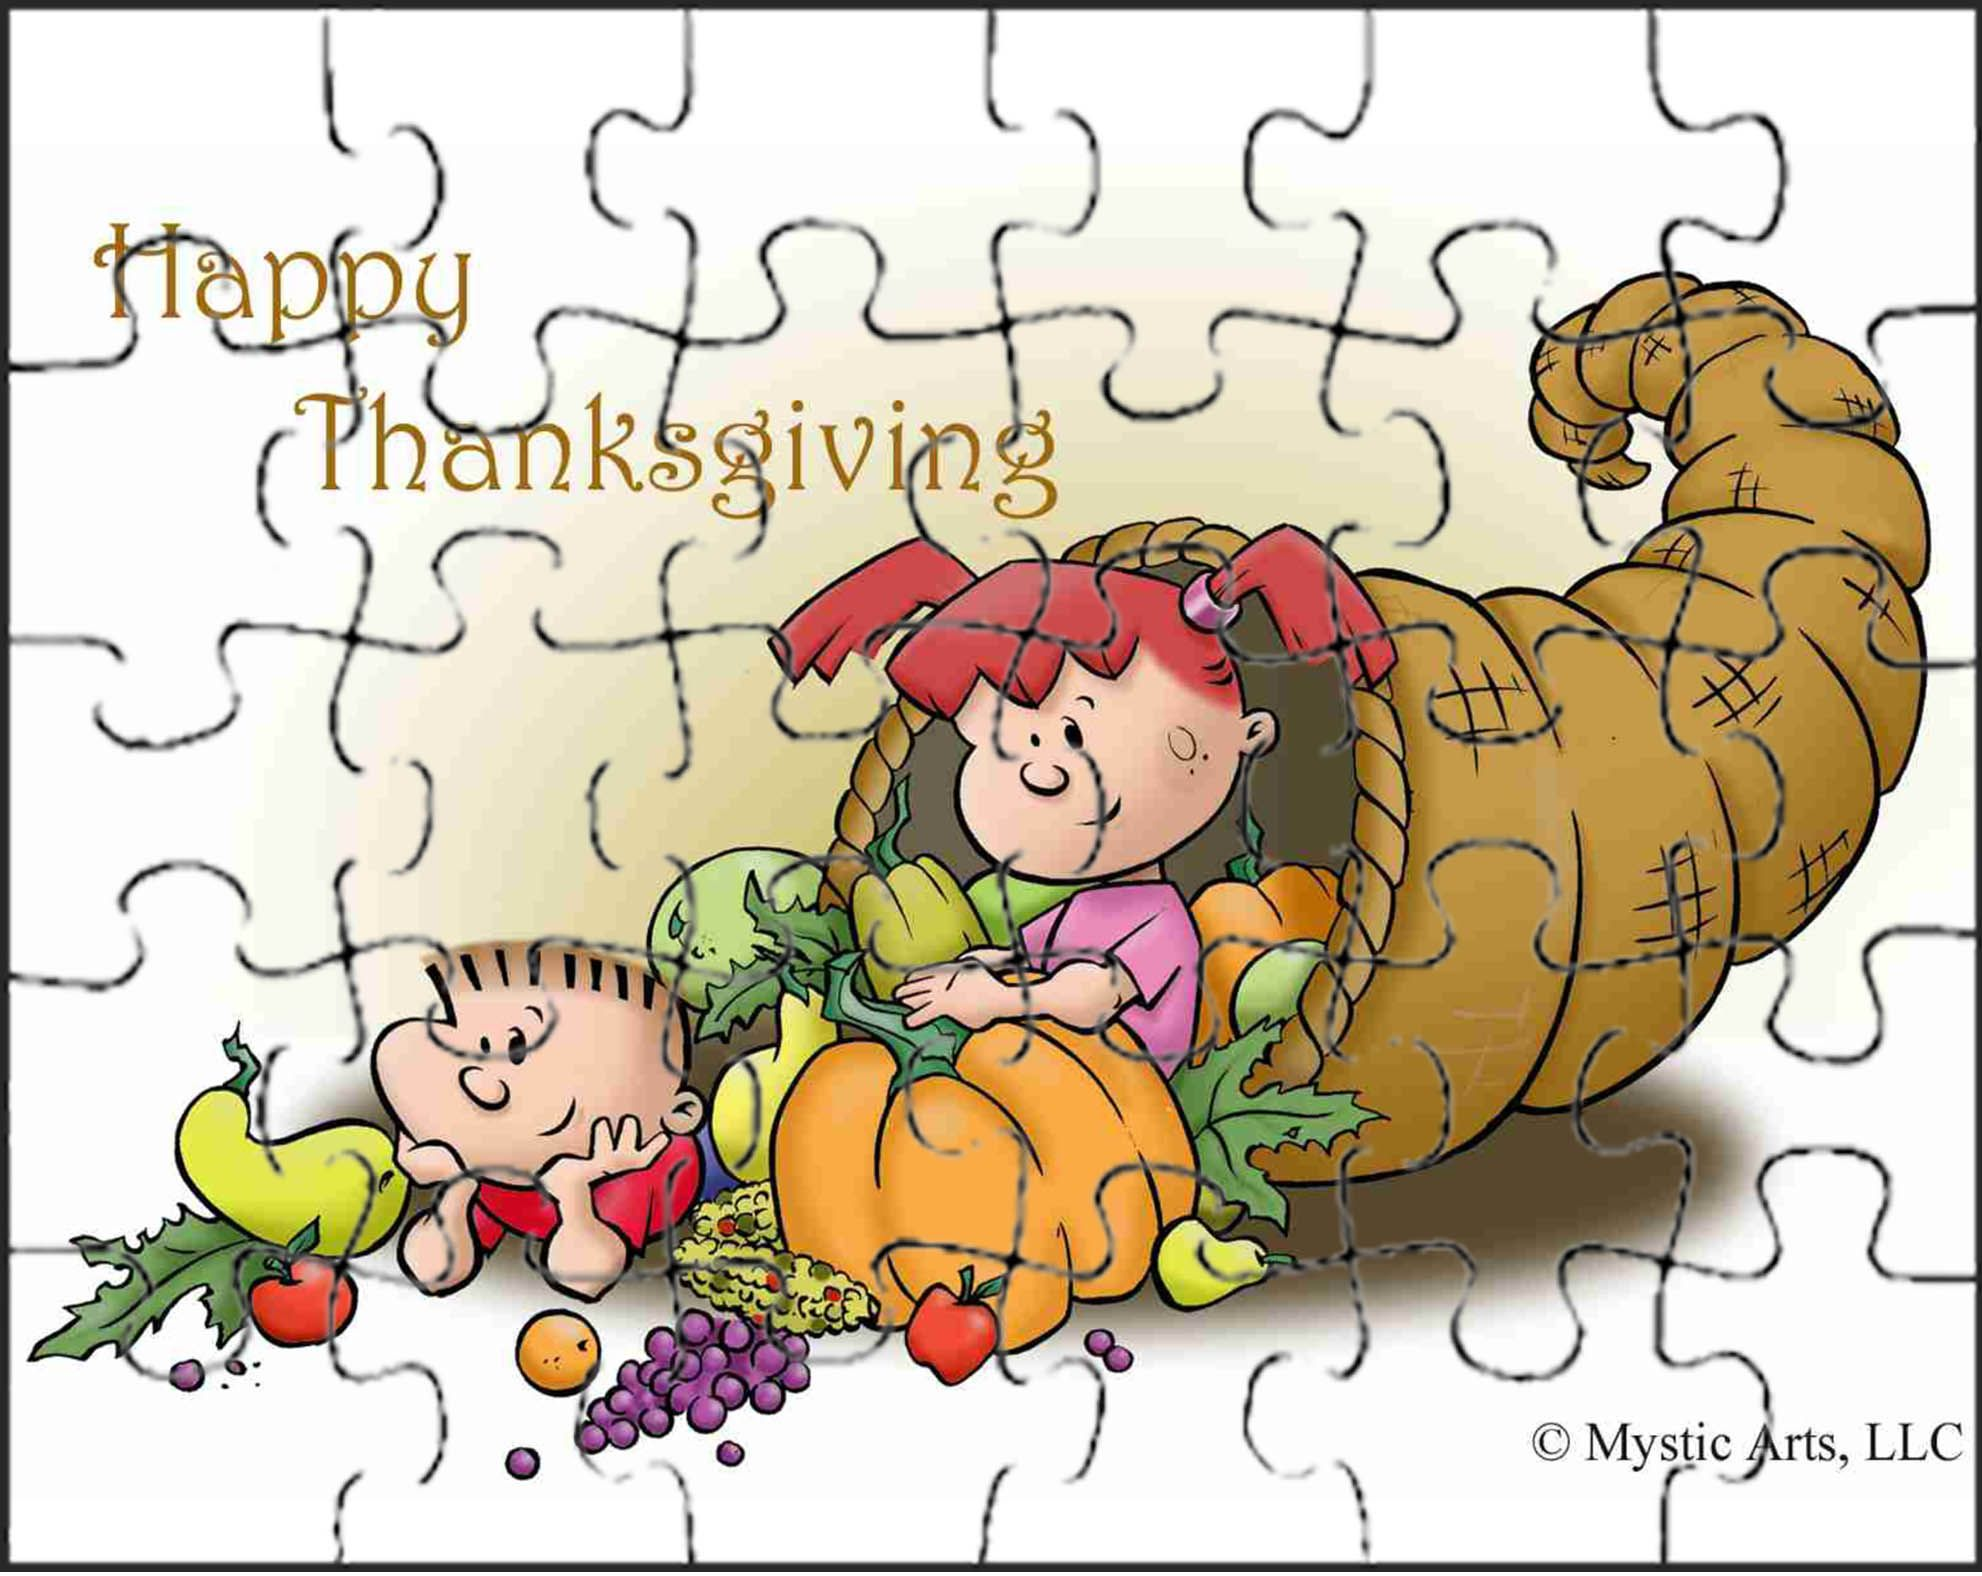 Thanksgiving Cornucopia Puzzle And Other Fun Activities For Kids